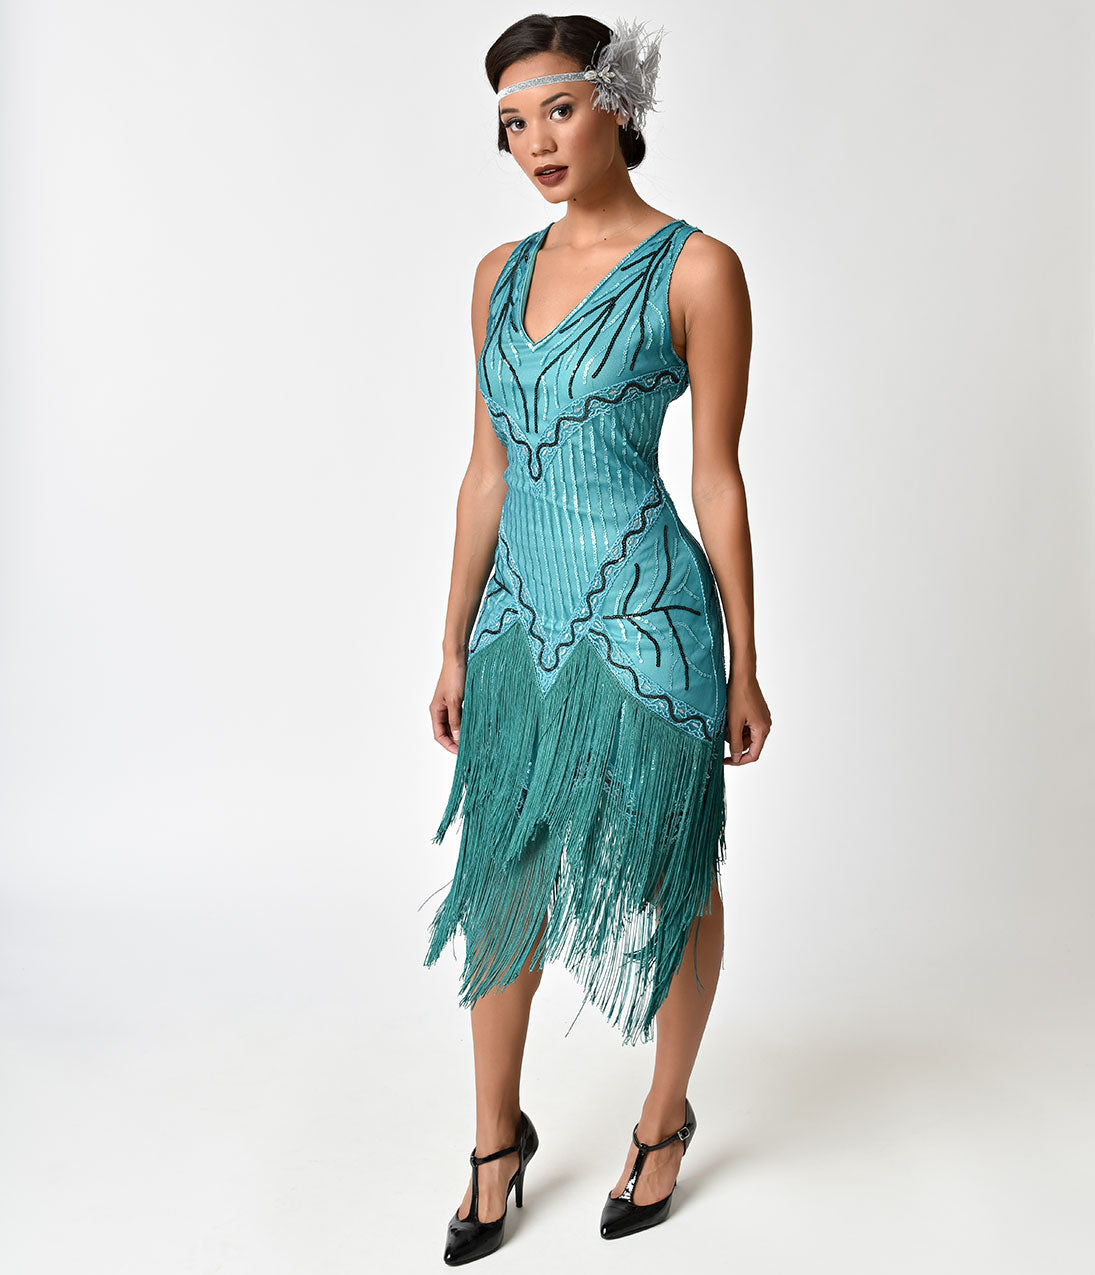 Roaring 20s Costumes- Flapper Costumes, Gangster Costumes 1920S Style Teal Beaded  Fringe Fosse Flapper Dress $63.00 AT vintagedancer.com